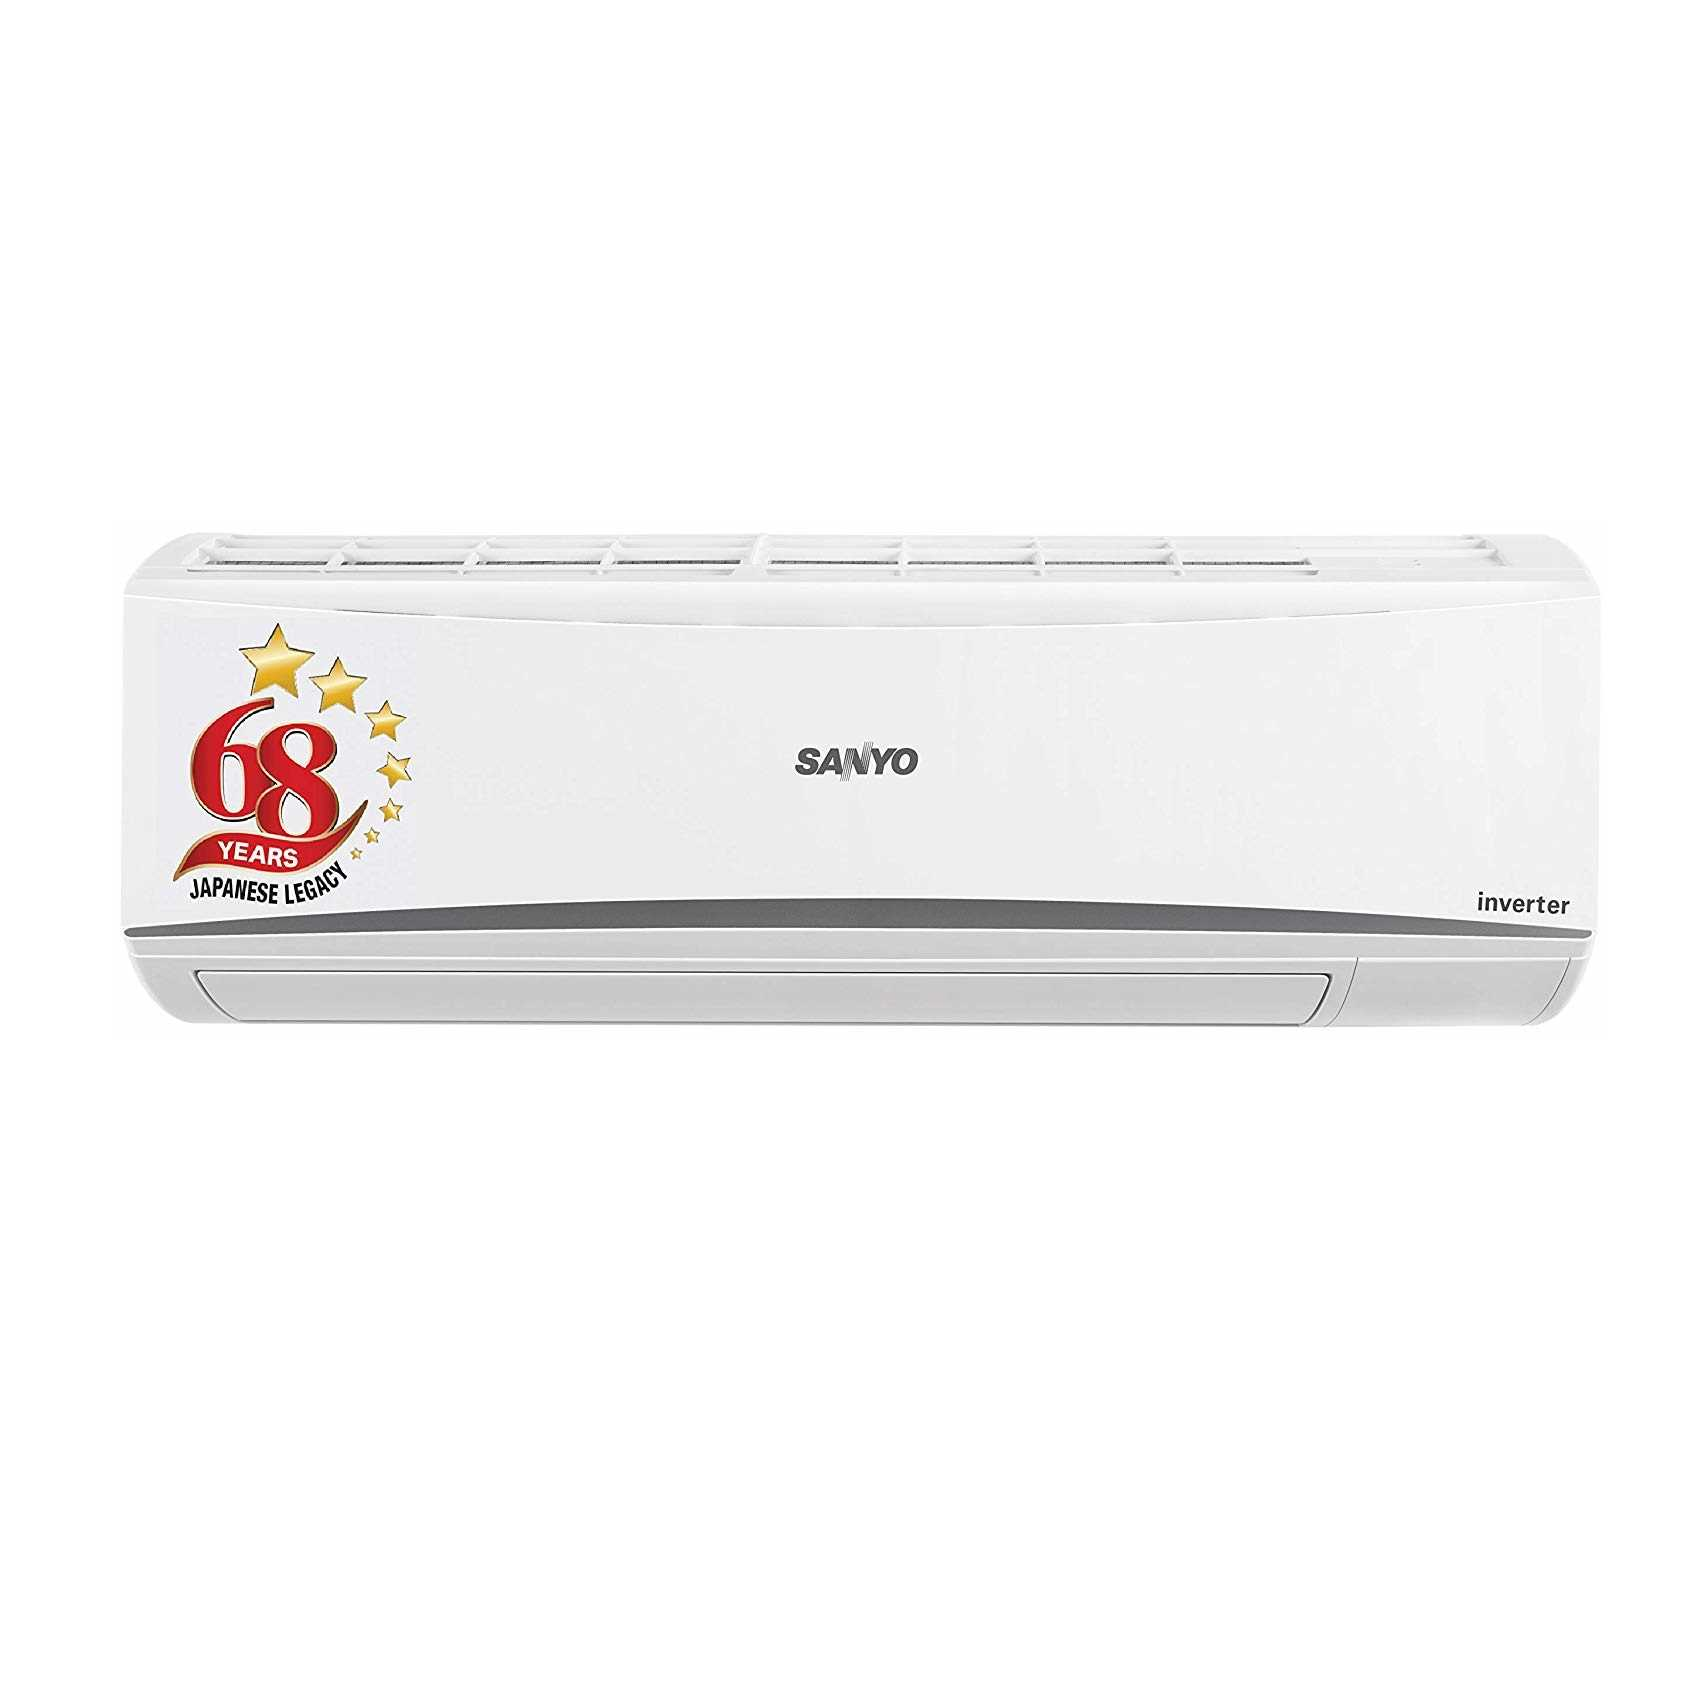 Sanyo SI-SO-10T3SCIA 1 Ton 3 Star Split Inverter AC